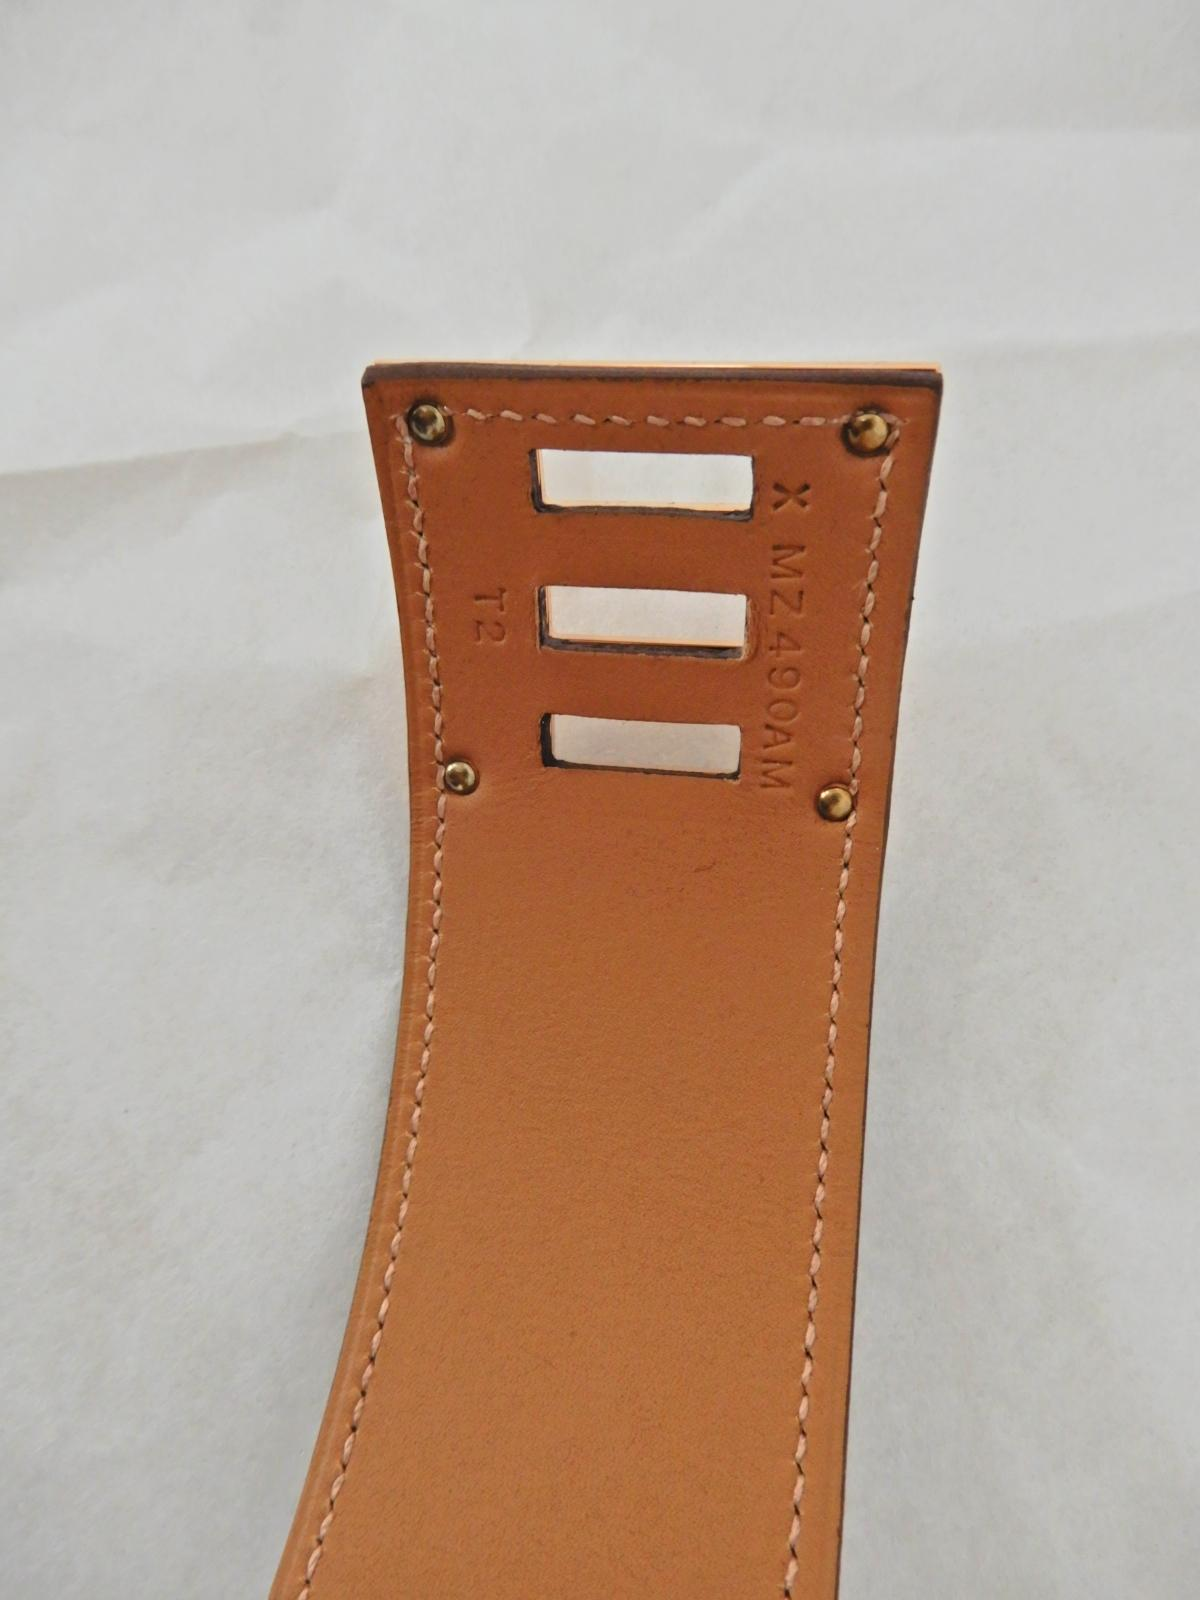 77aa940af751 australia hermes bearn yellow wallet tradesy 9aa0d b5584  good hermès taupe  kelly dog etoupe swift leather rose gold hw cuff a9d87 8e315